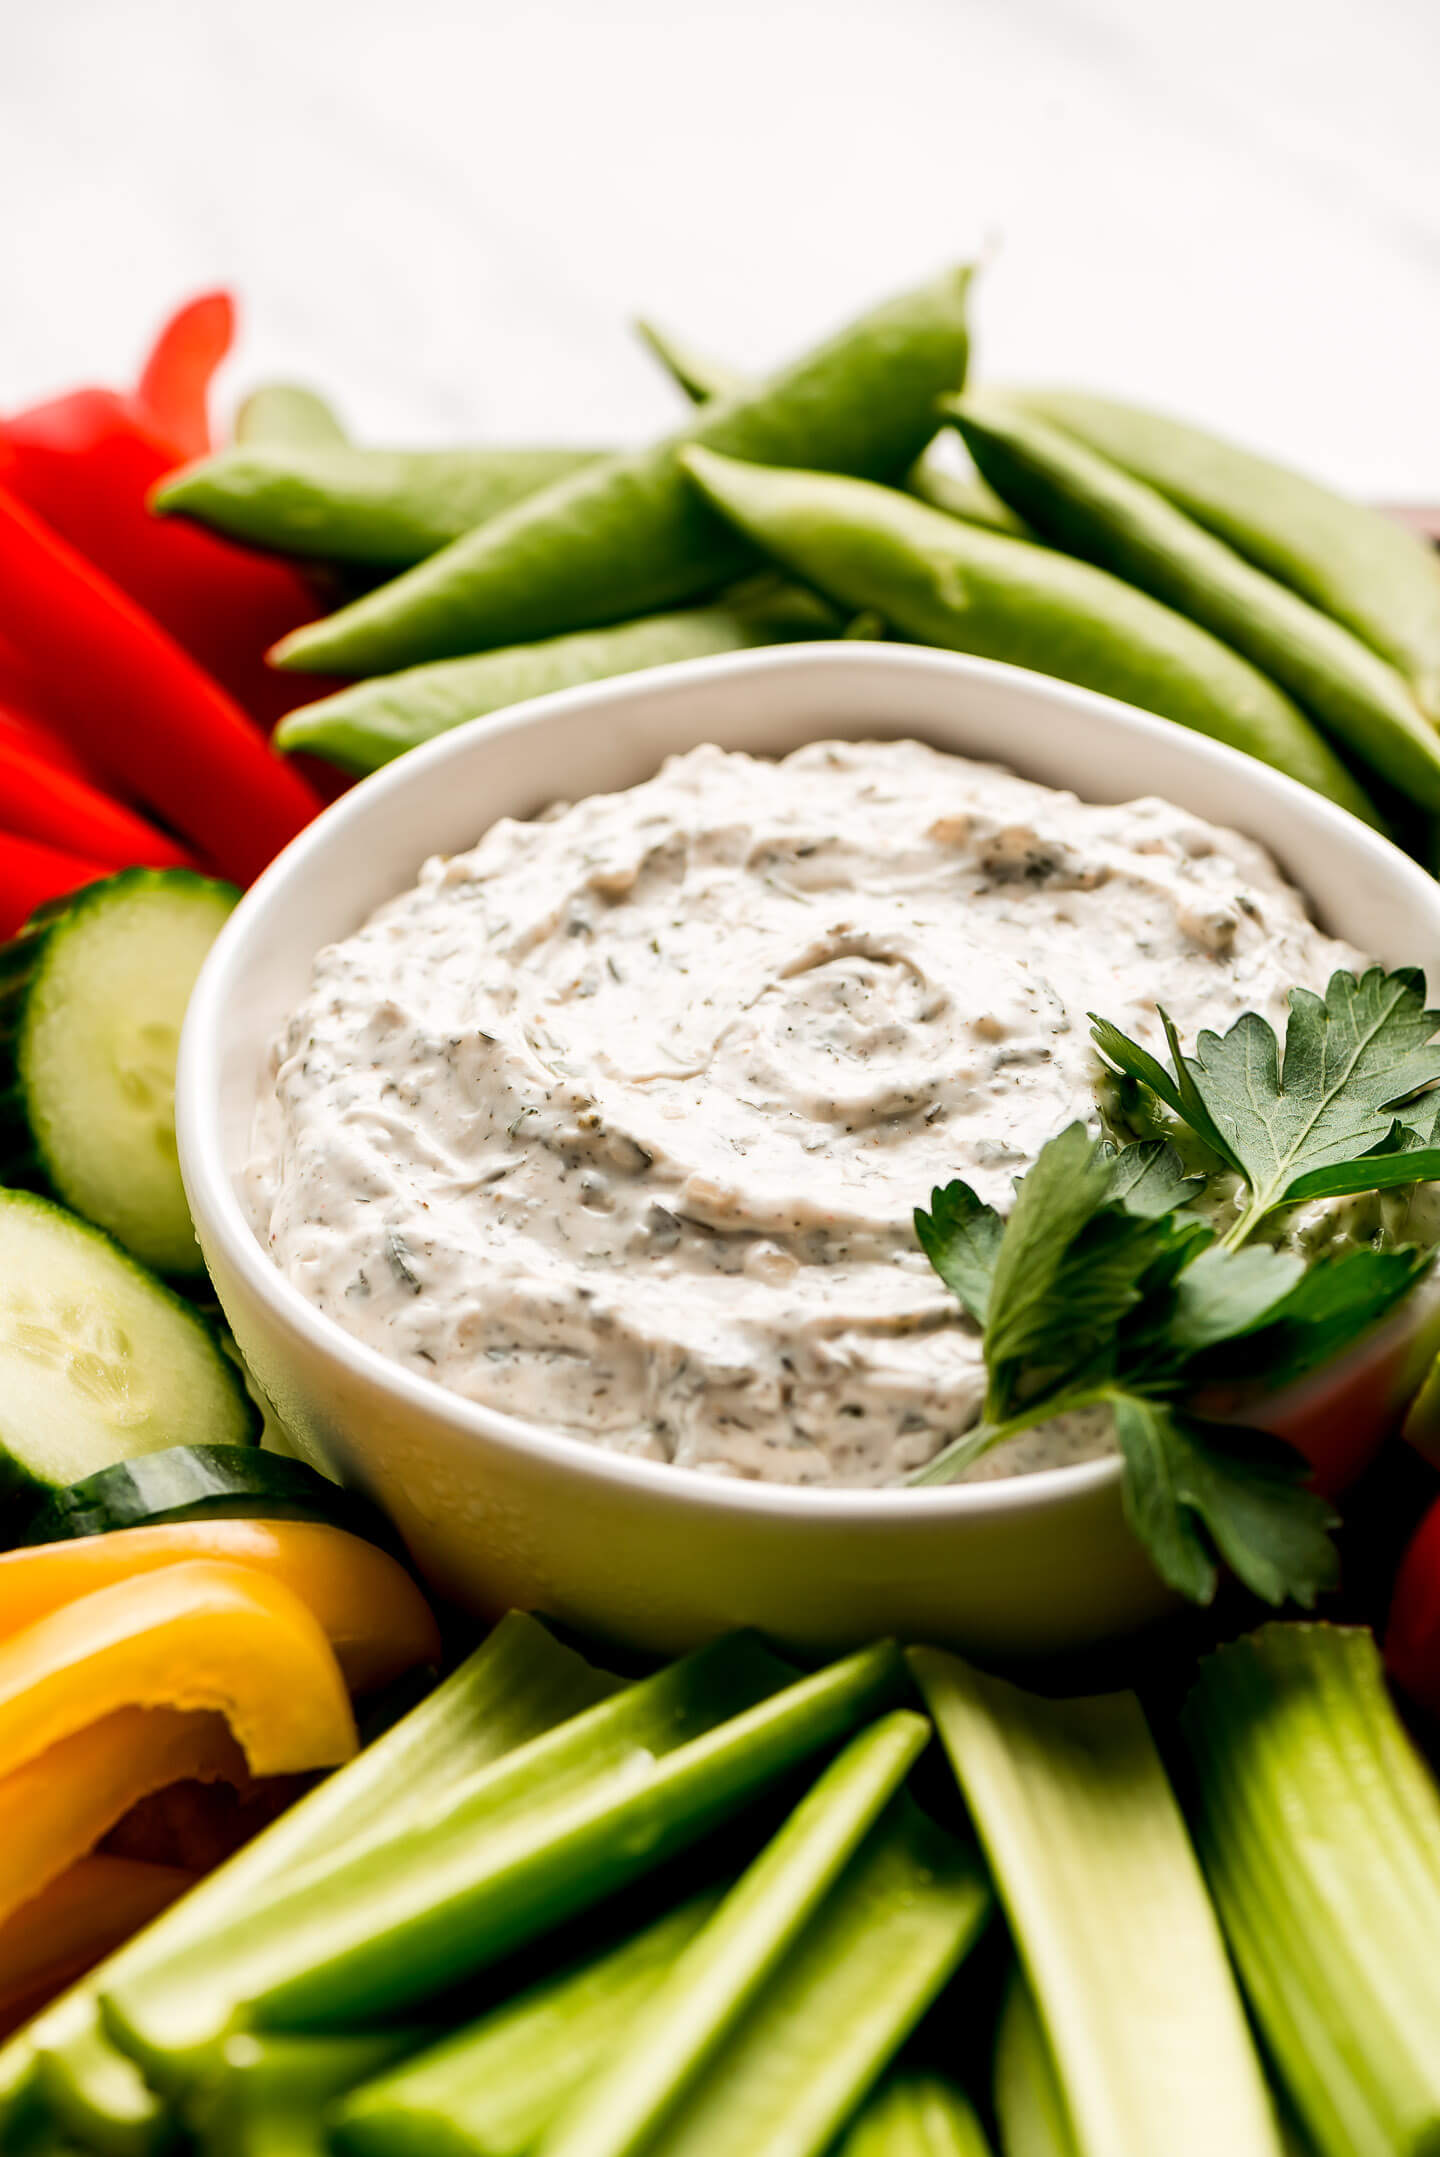 A close up shot of a bowl of seasoned sour cream and mayonnaise condiment.